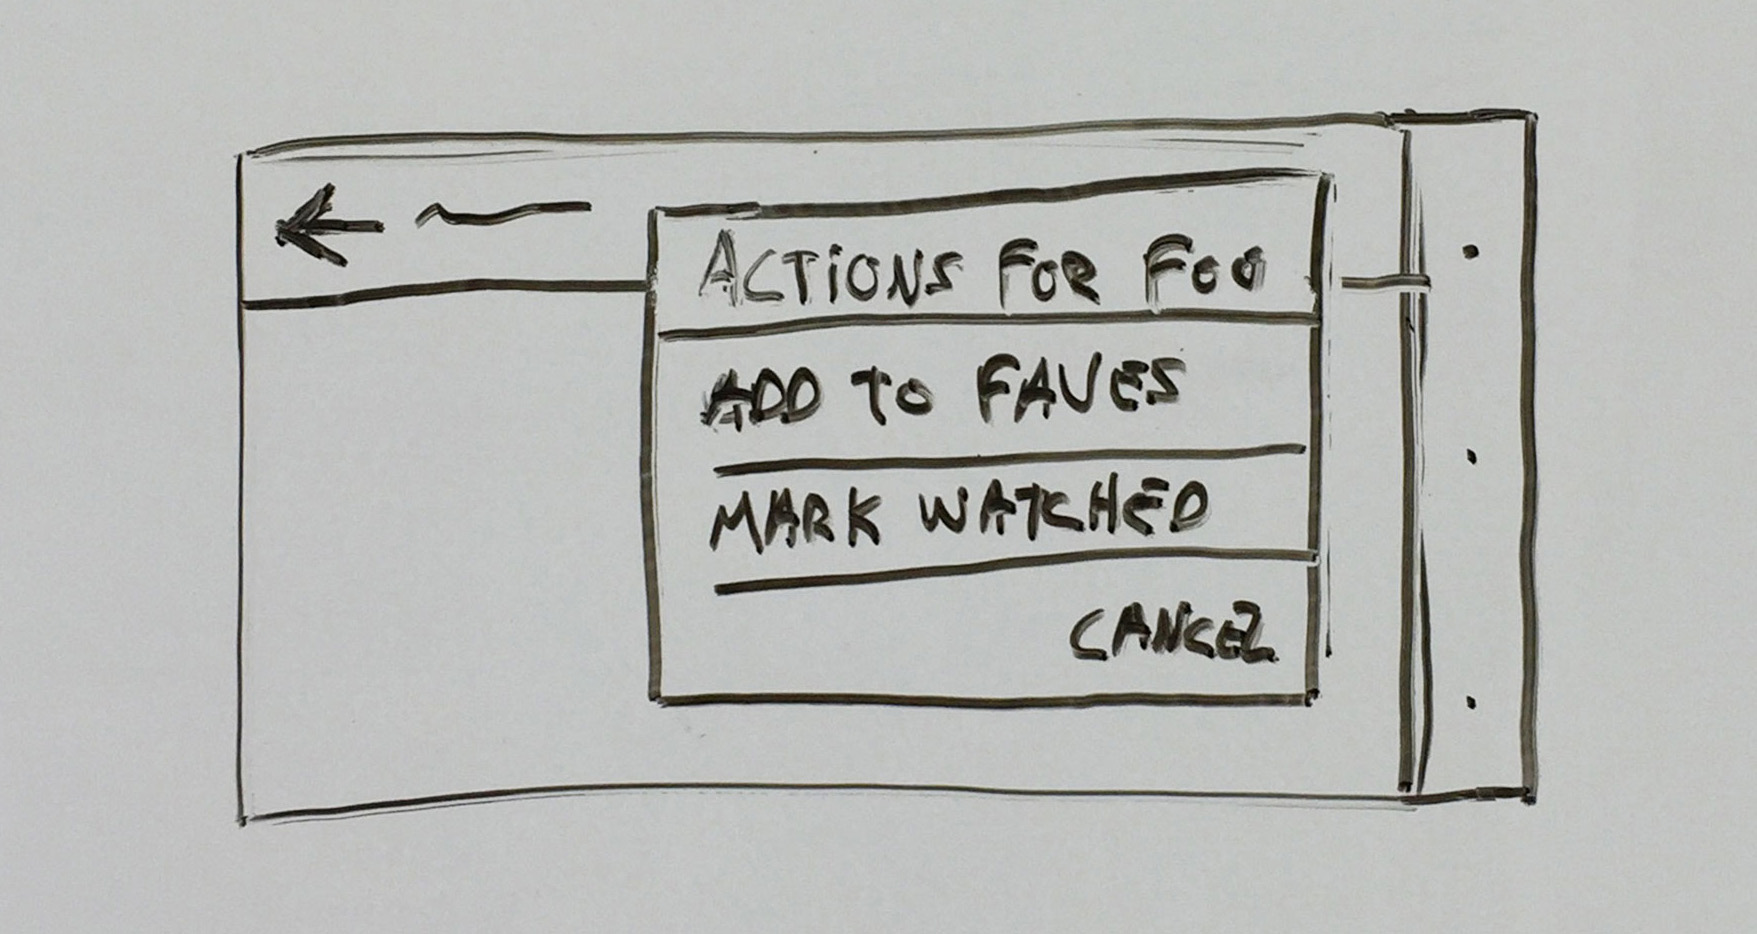 "shows context menu for item ""Foo"" with options to add to faves, mark as watched, and cancel"